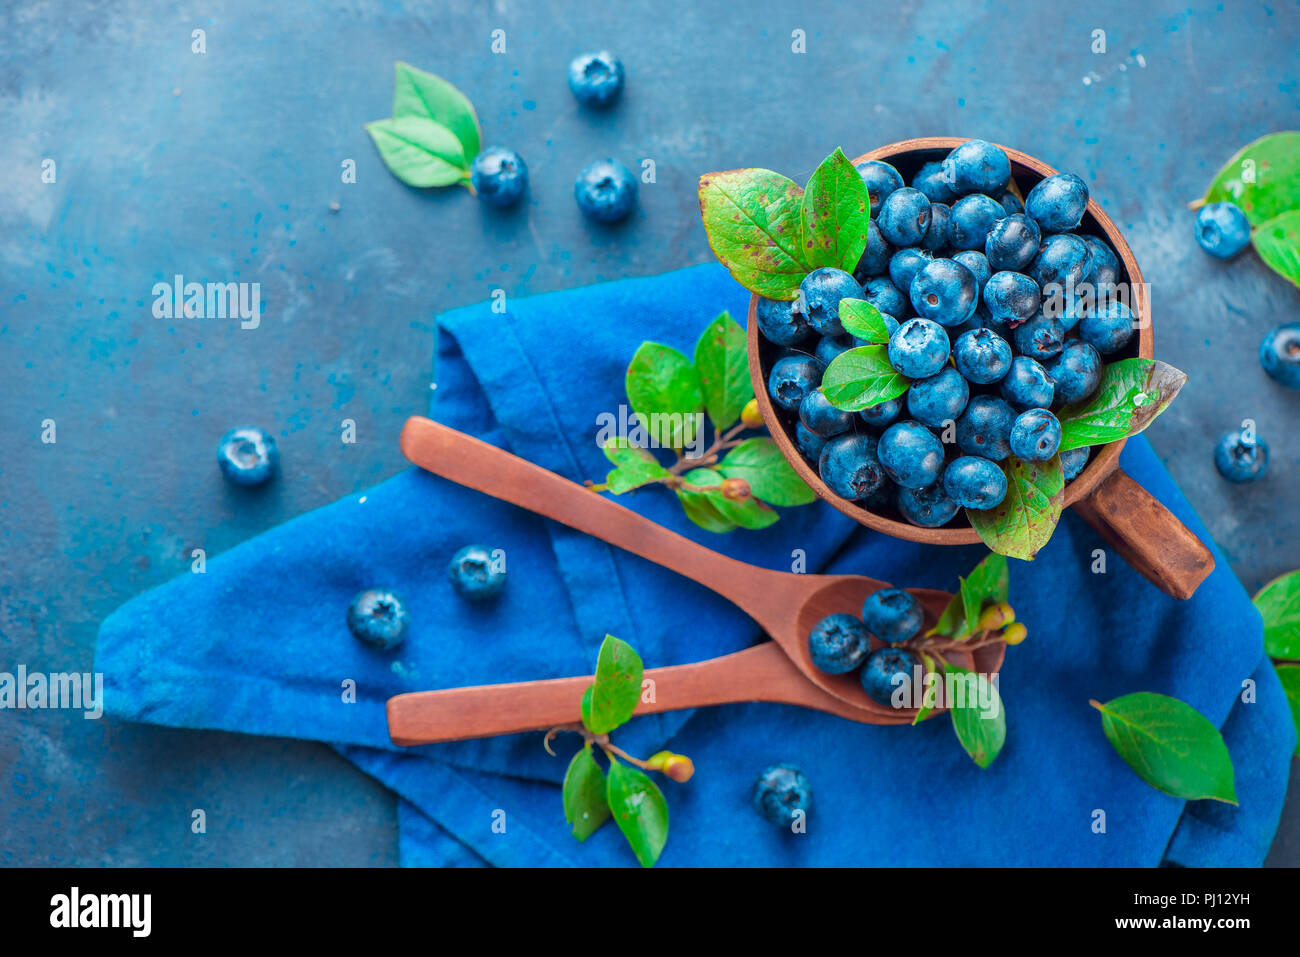 Summer berries flat lay. Blueberries in a ceramic cup with wooden spoons from above. Neutral colors, blue and gray palette, copy space - Stock Image